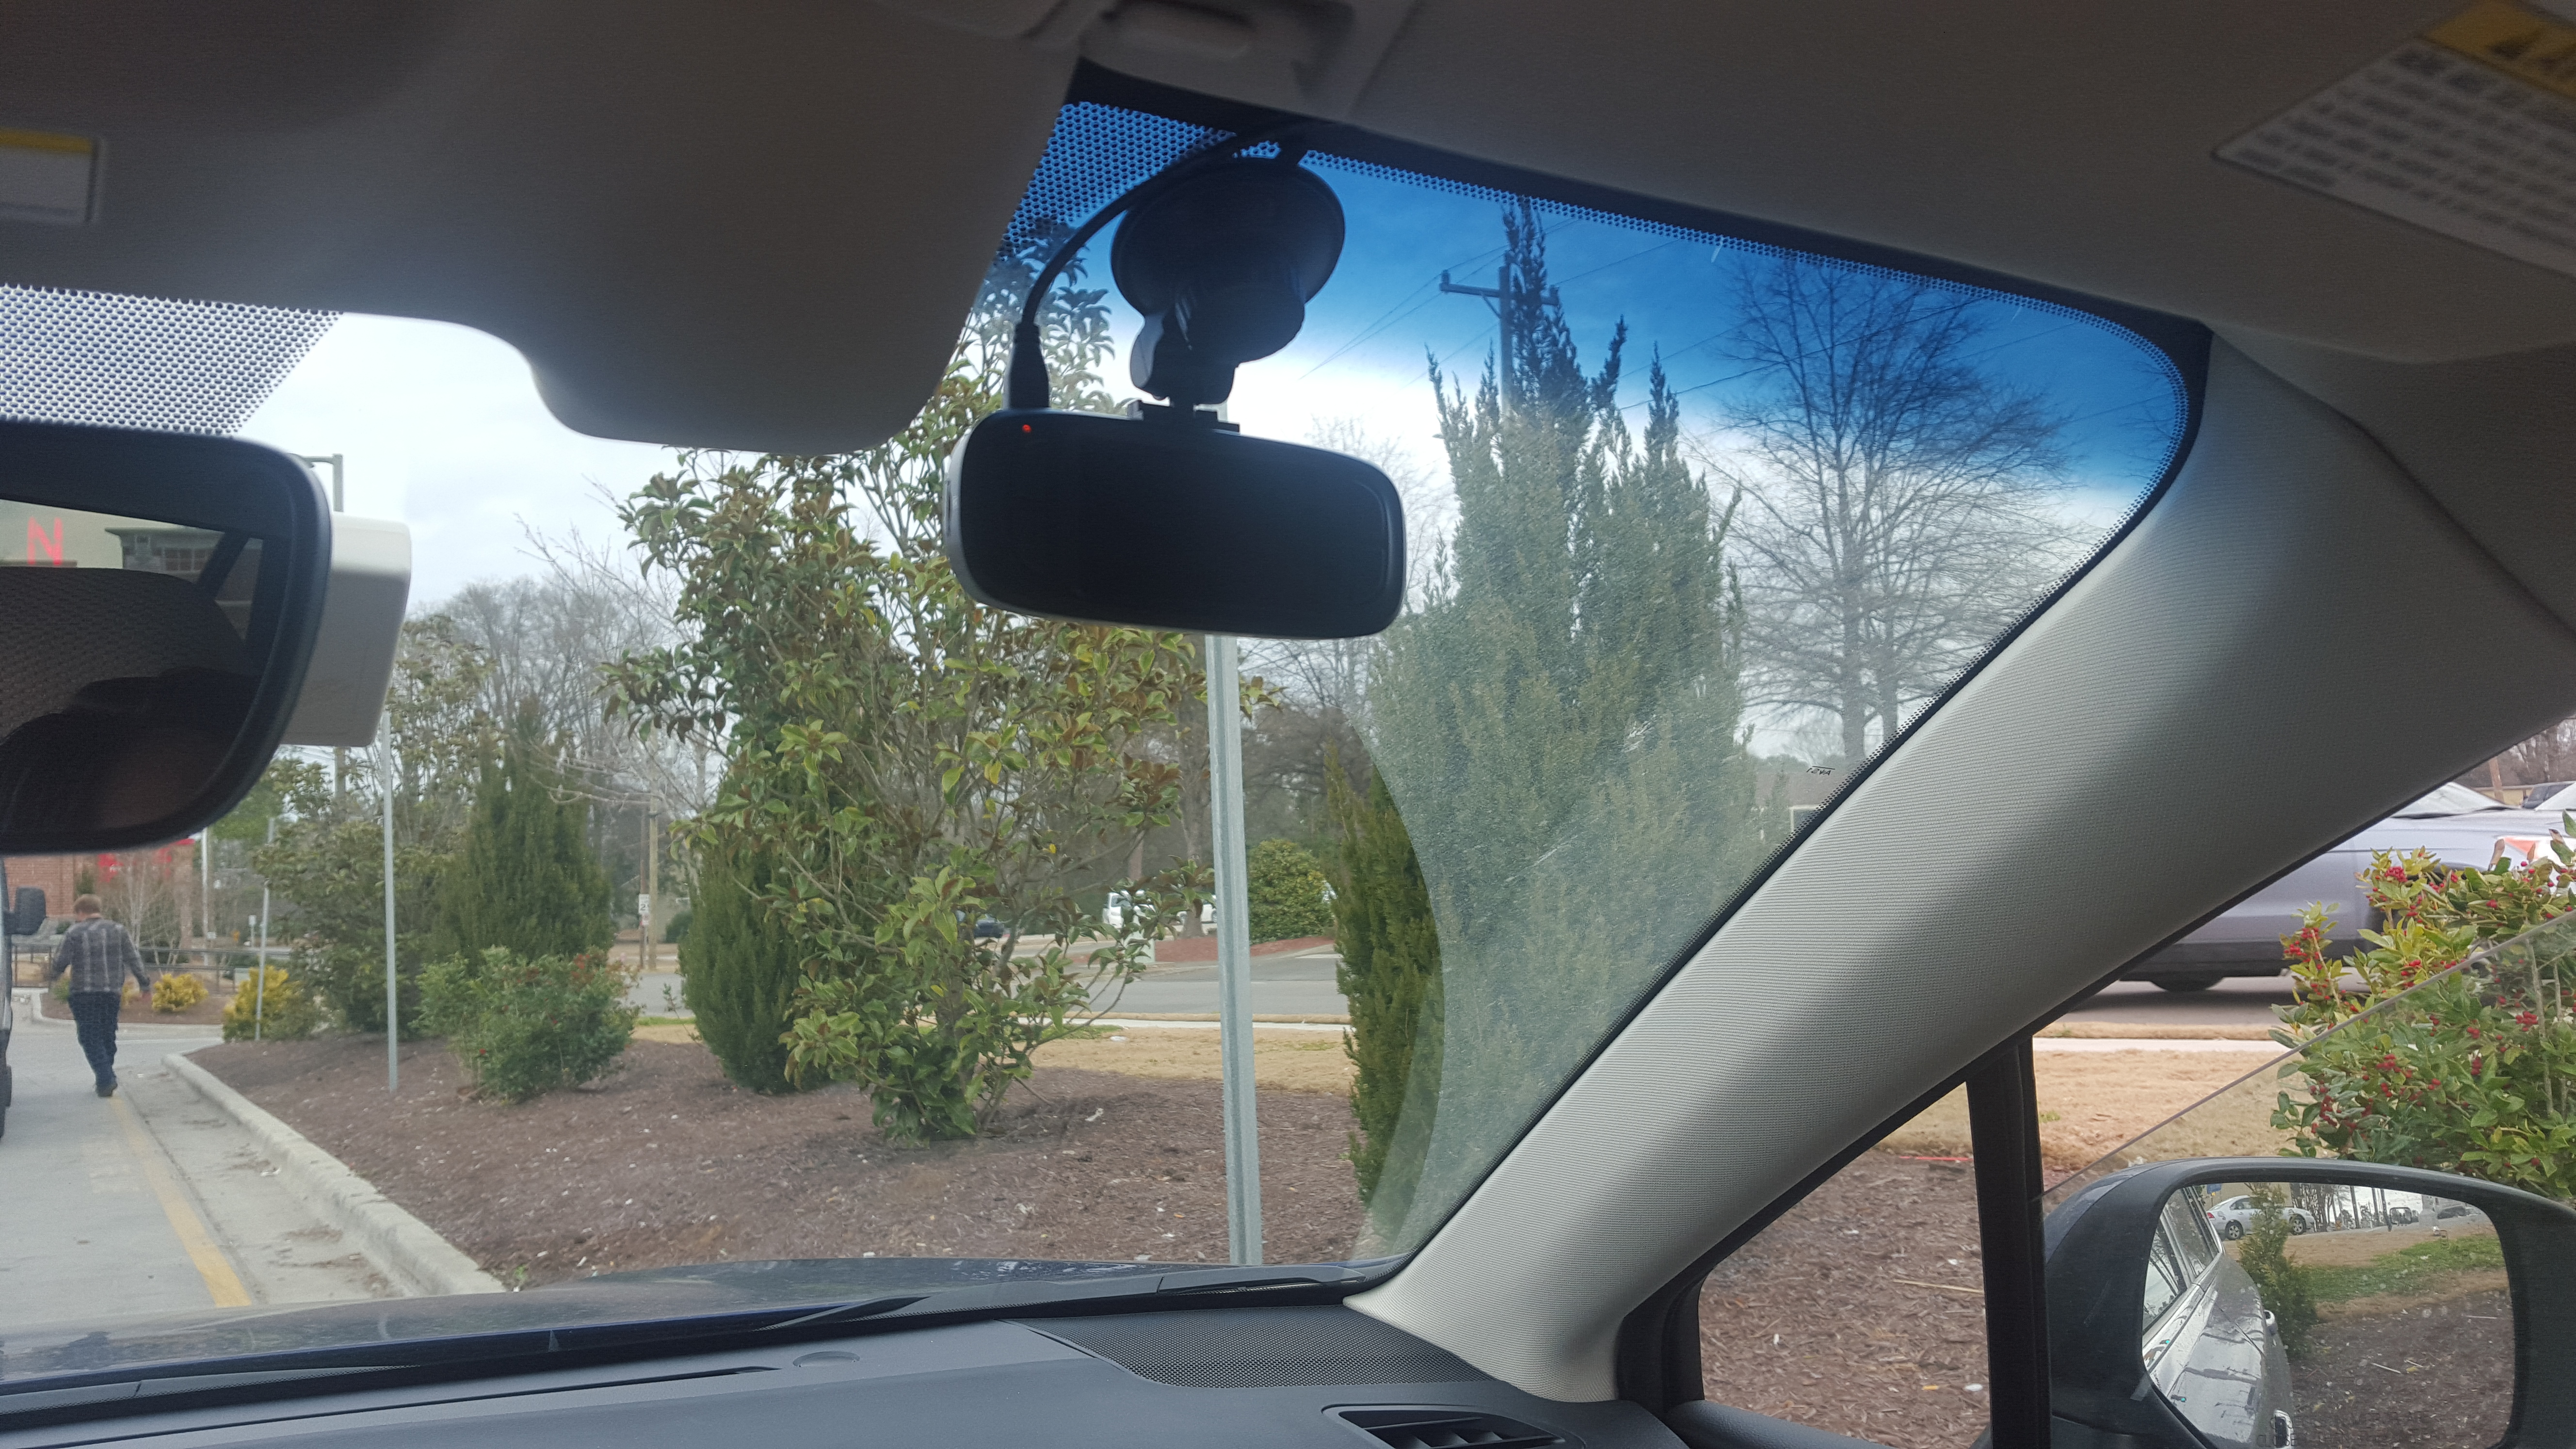 How to install a Dash Cam in a Subaru Outback – Kamil's Lab